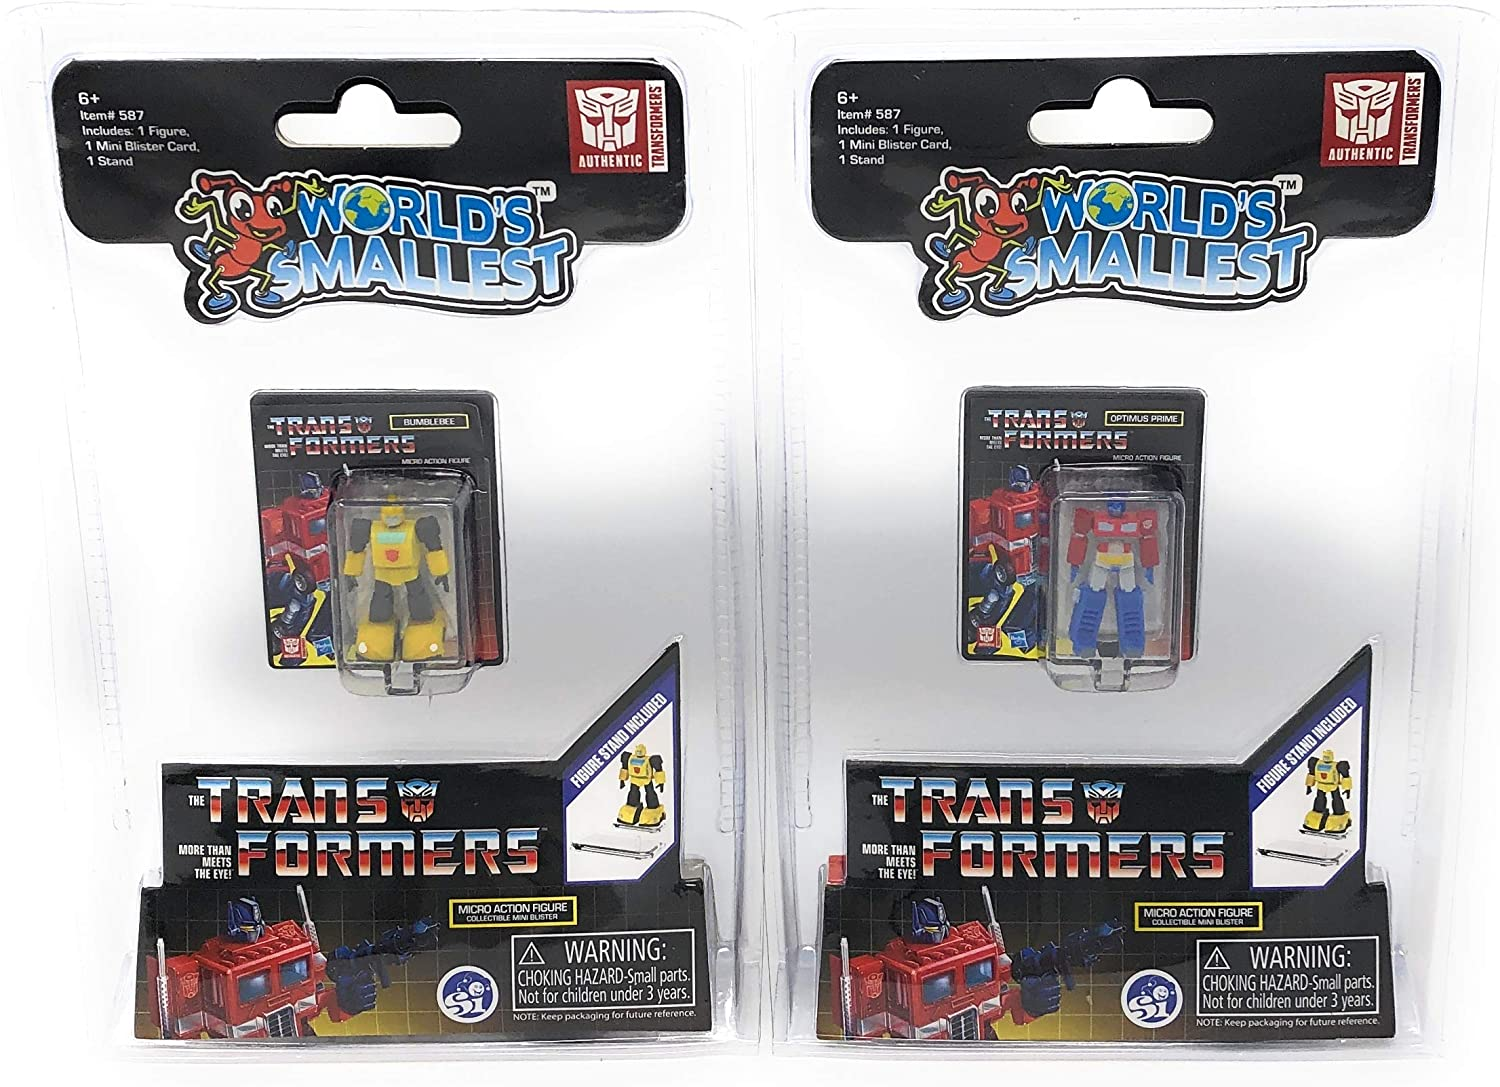 Transformers Generation One Sticker Packet One Packet of 6 Stickers Supplied